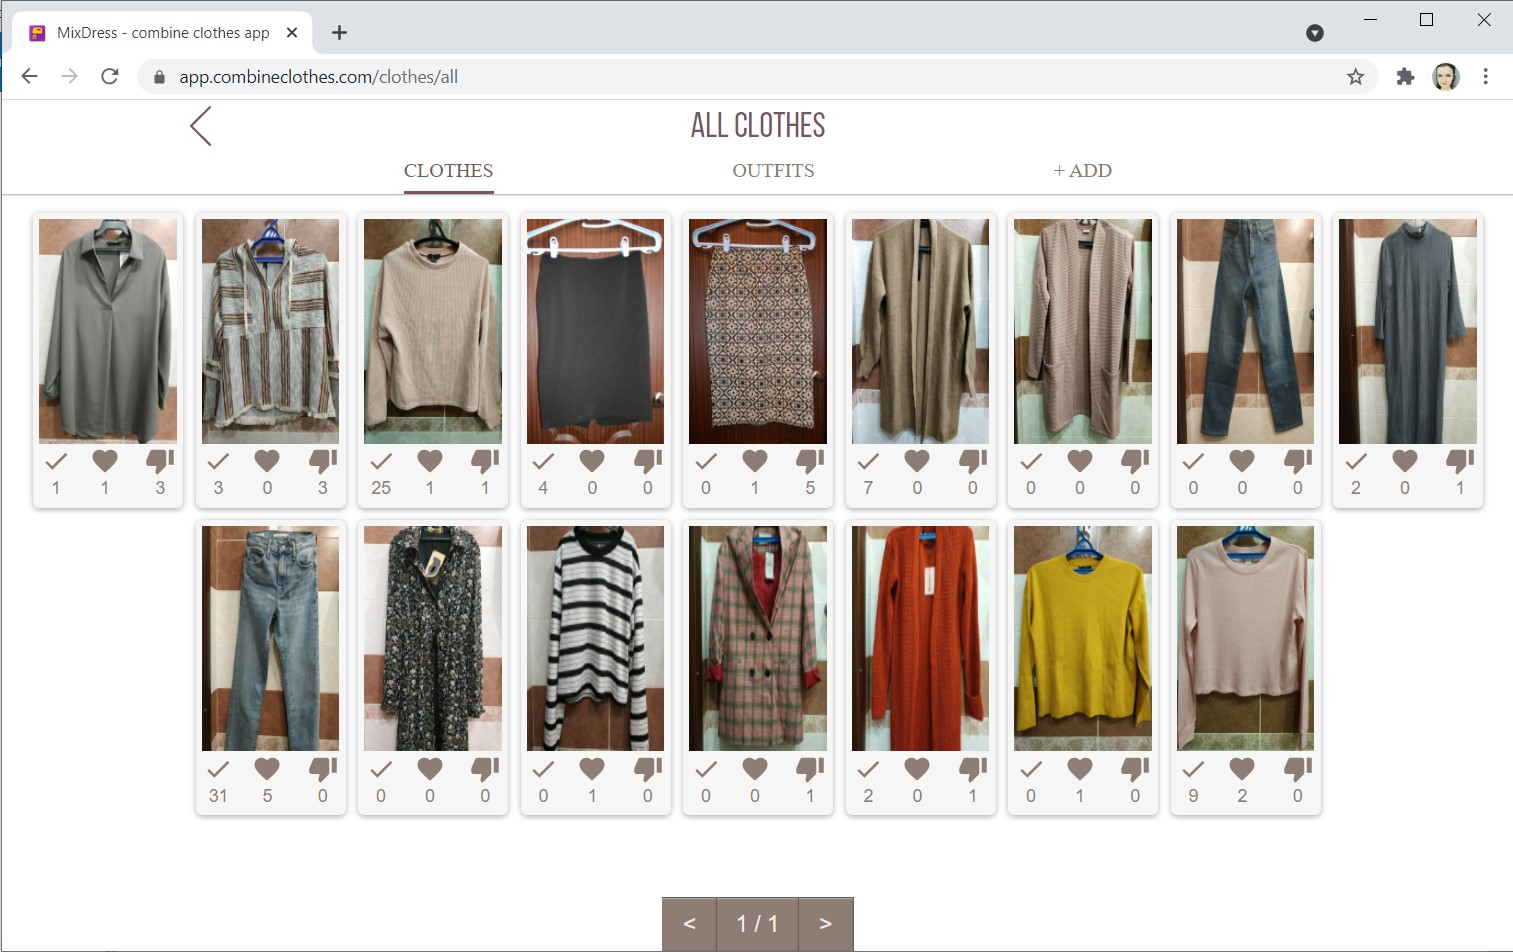 Clothing catalog